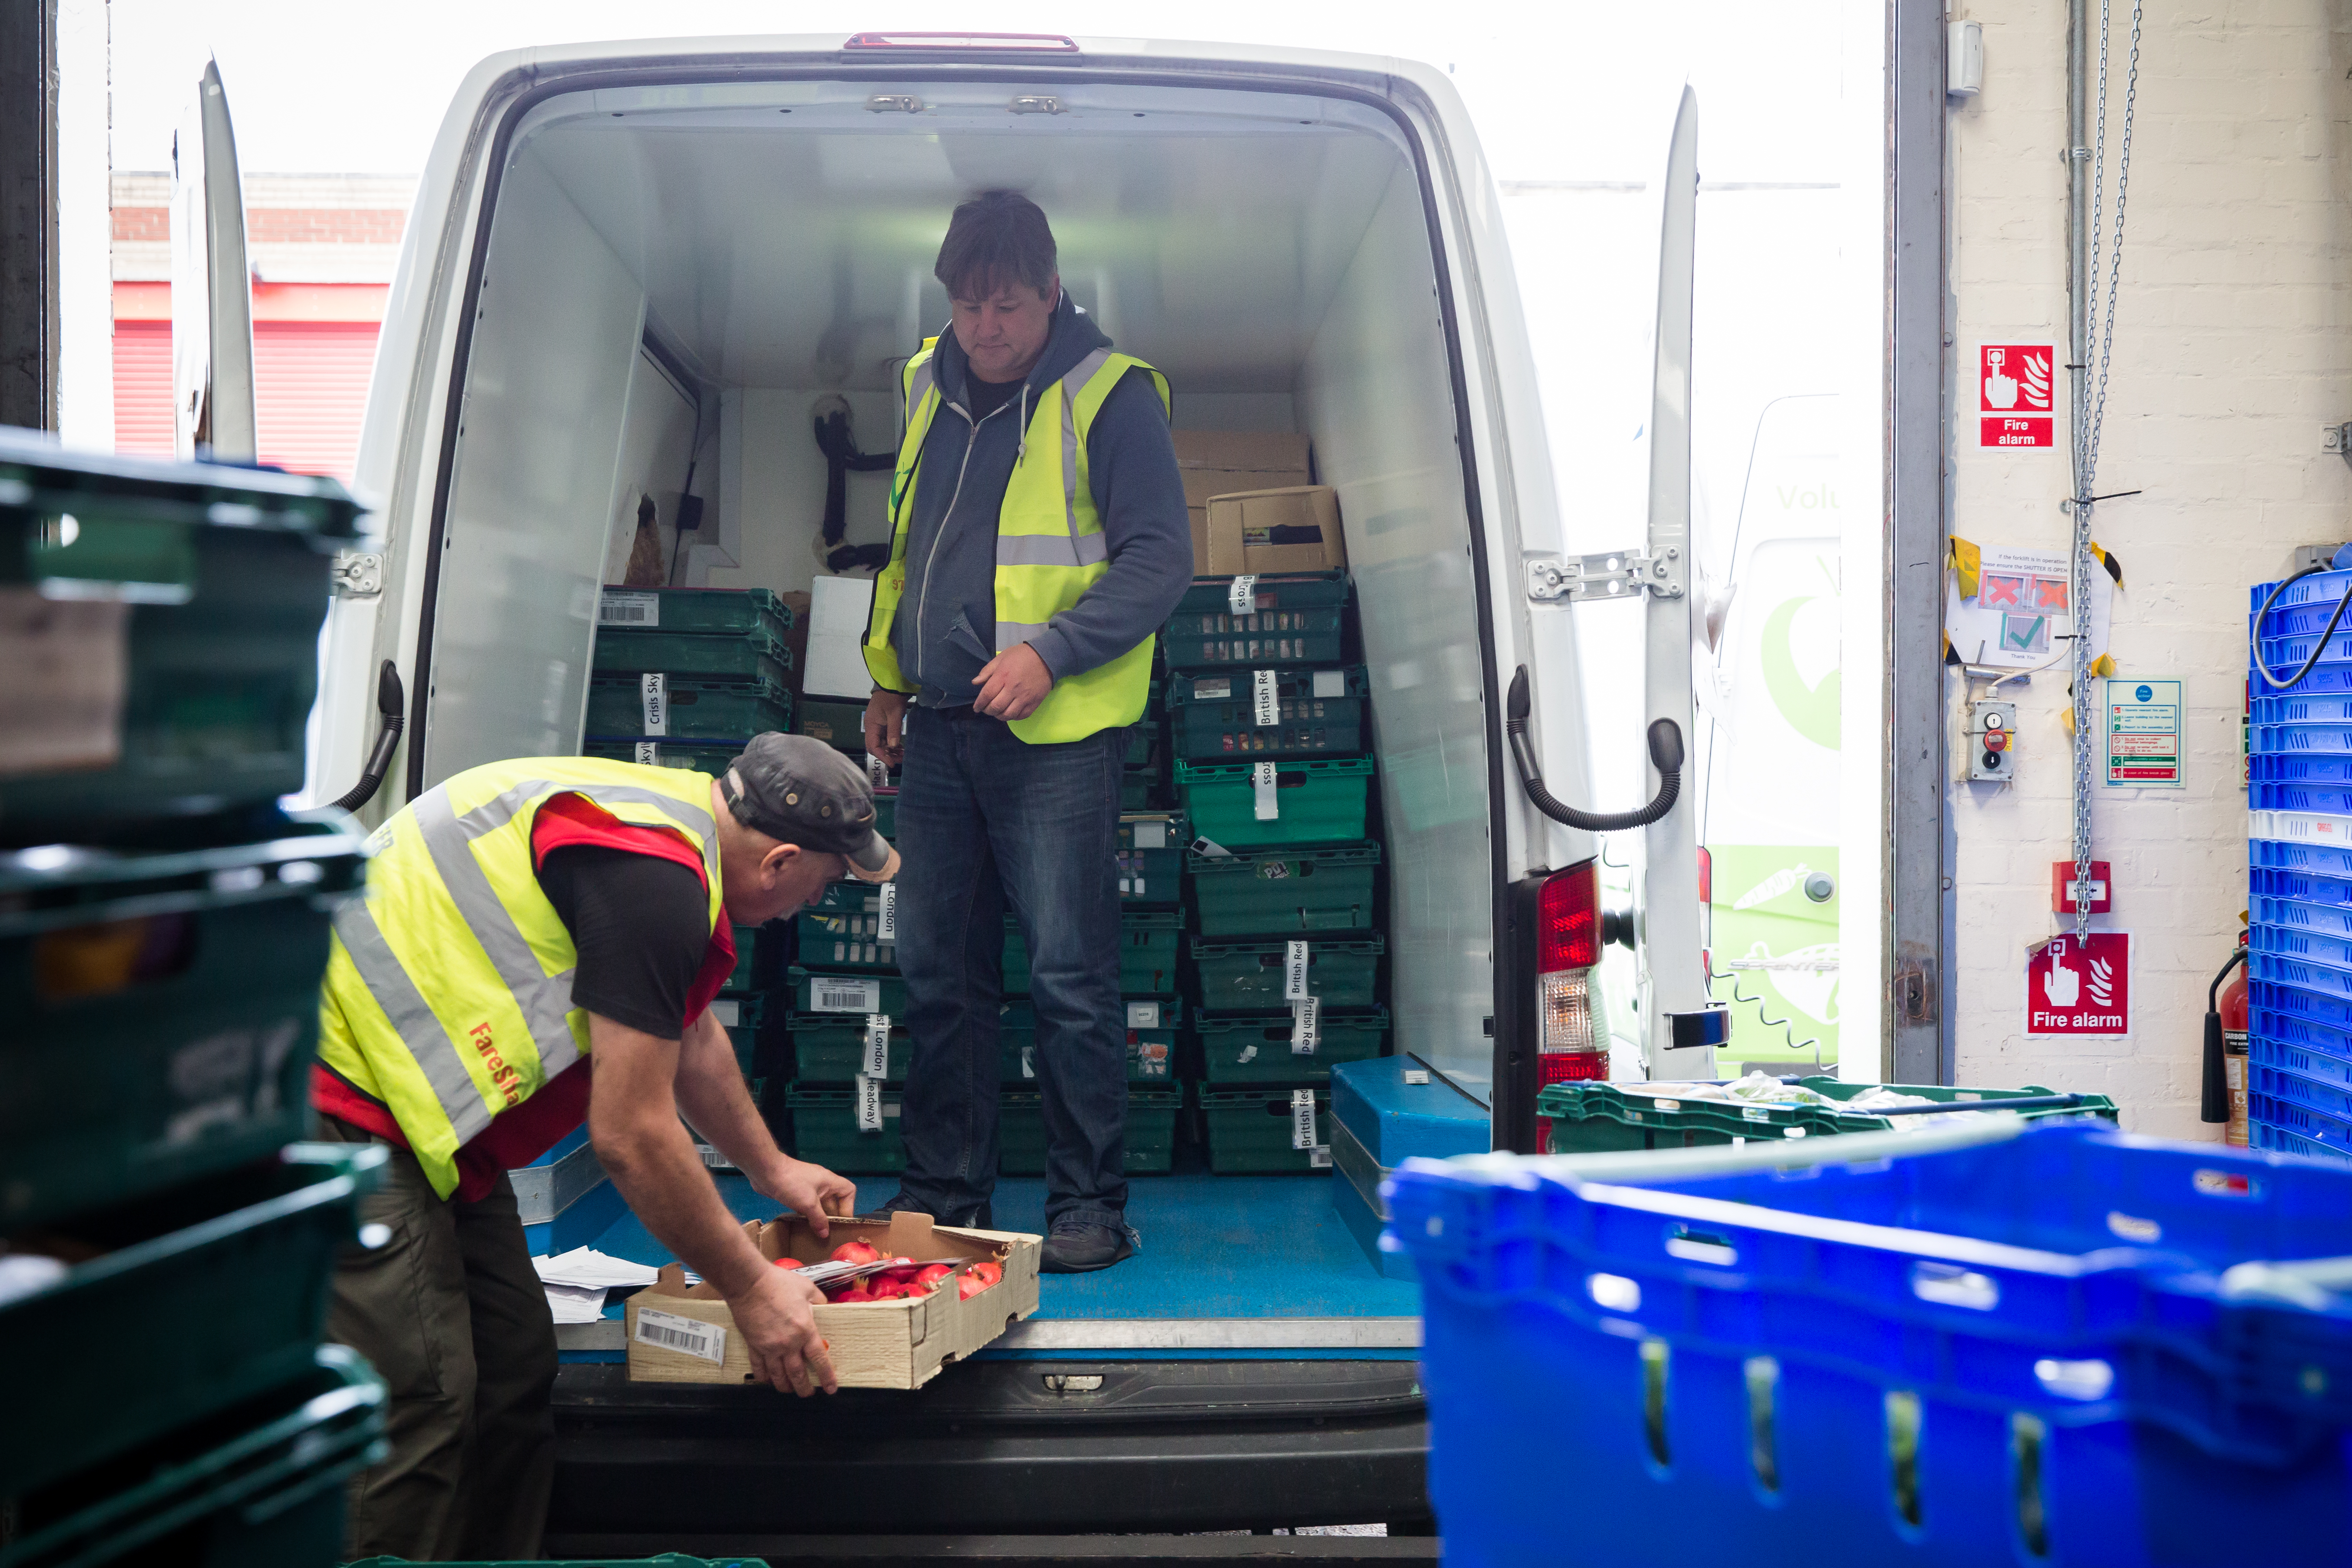 FareShare volunteers loading the van with food